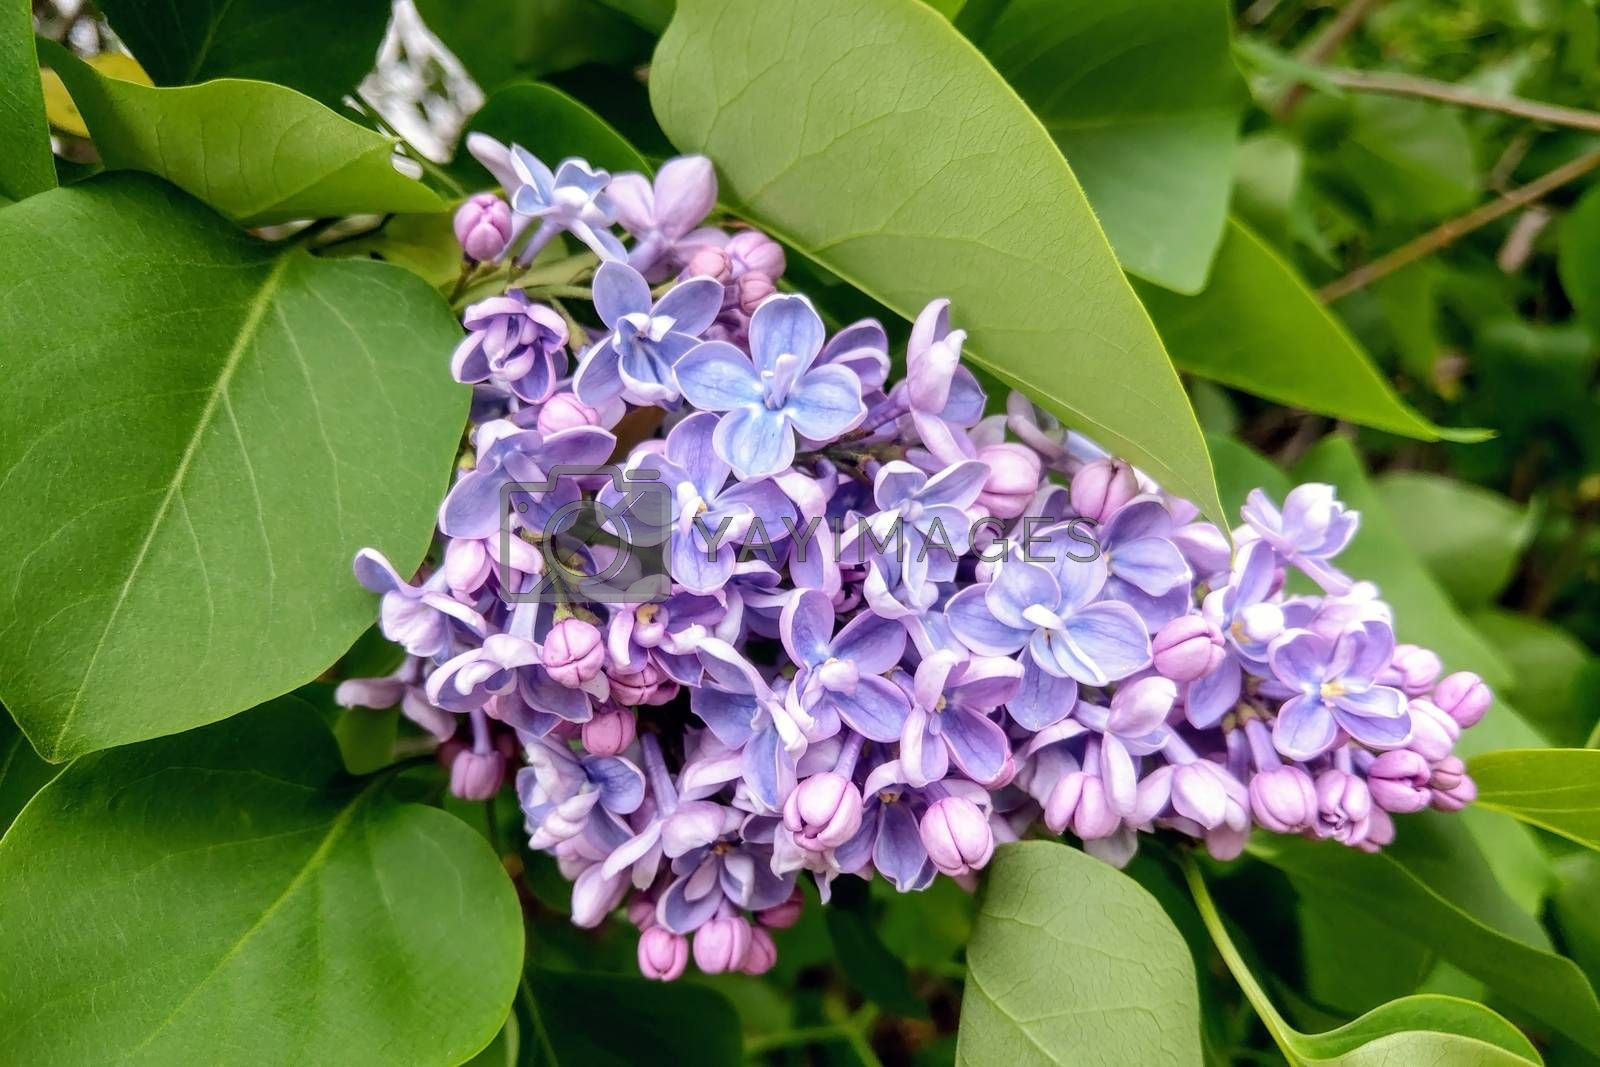 A branch of blooming lilacs in the garden